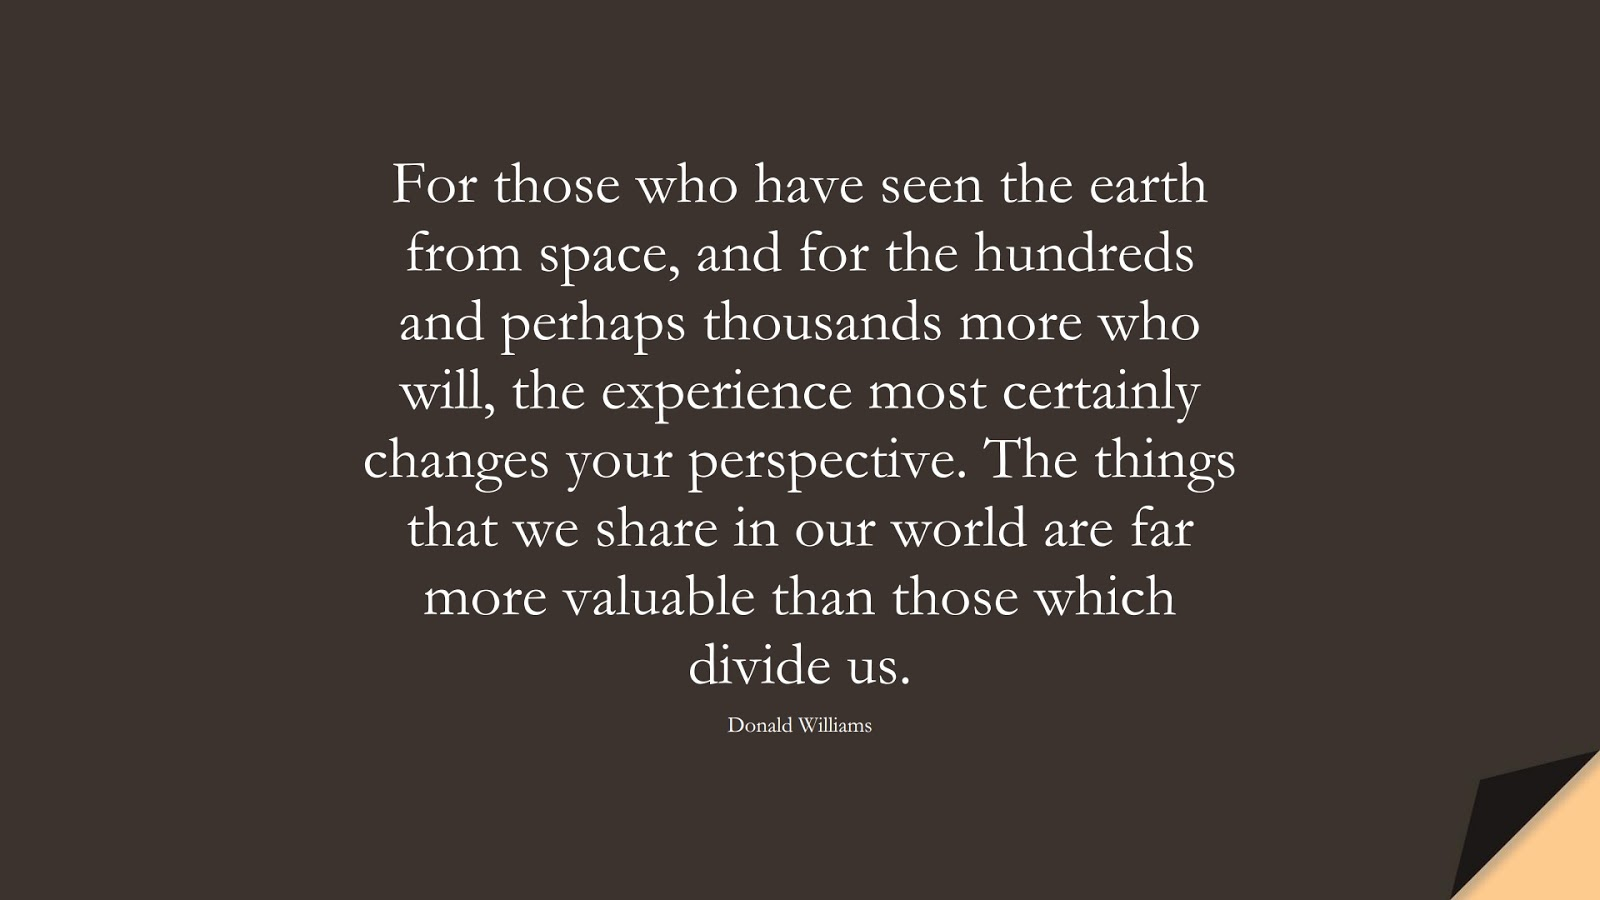 For those who have seen the earth from space, and for the hundreds and perhaps thousands more who will, the experience most certainly changes your perspective. The things that we share in our world are far more valuable than those which divide us. (Donald Williams);  #HumanityQuotes